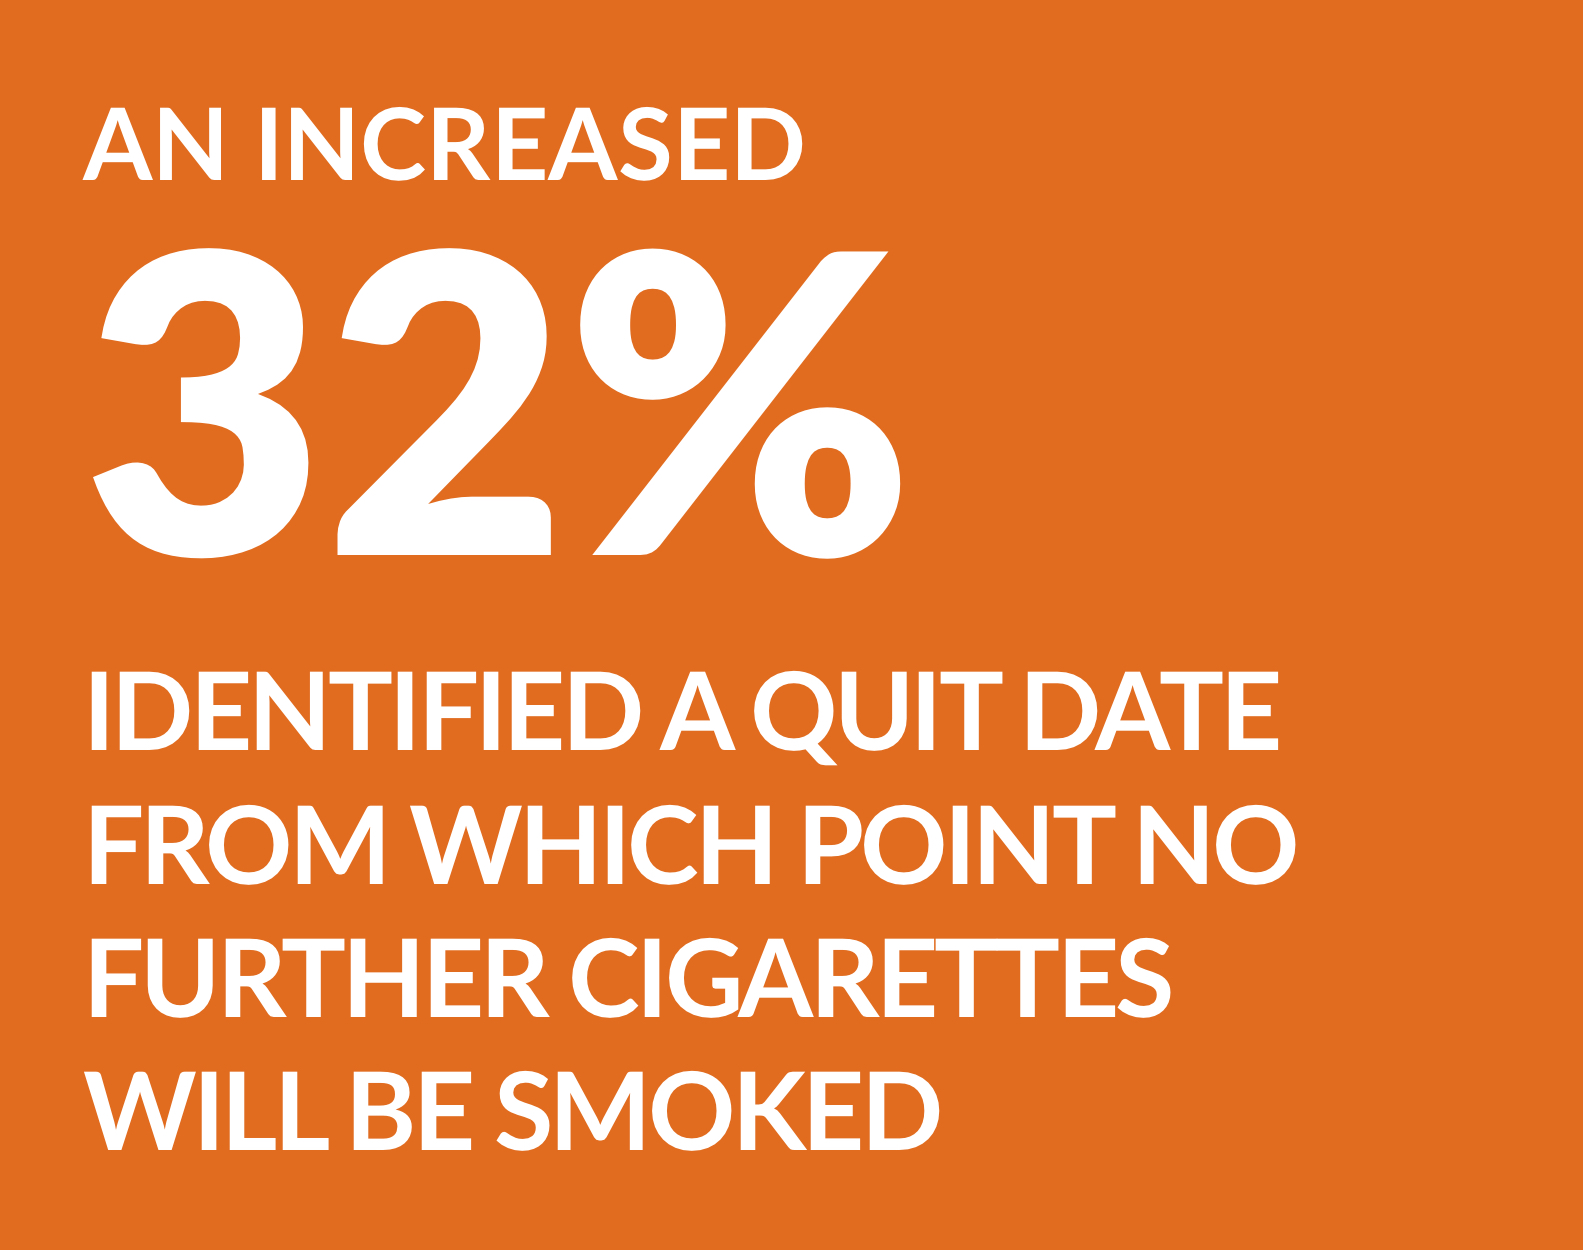 An increased 32% identified a quit date from which point no further cigarettes will be smoked.